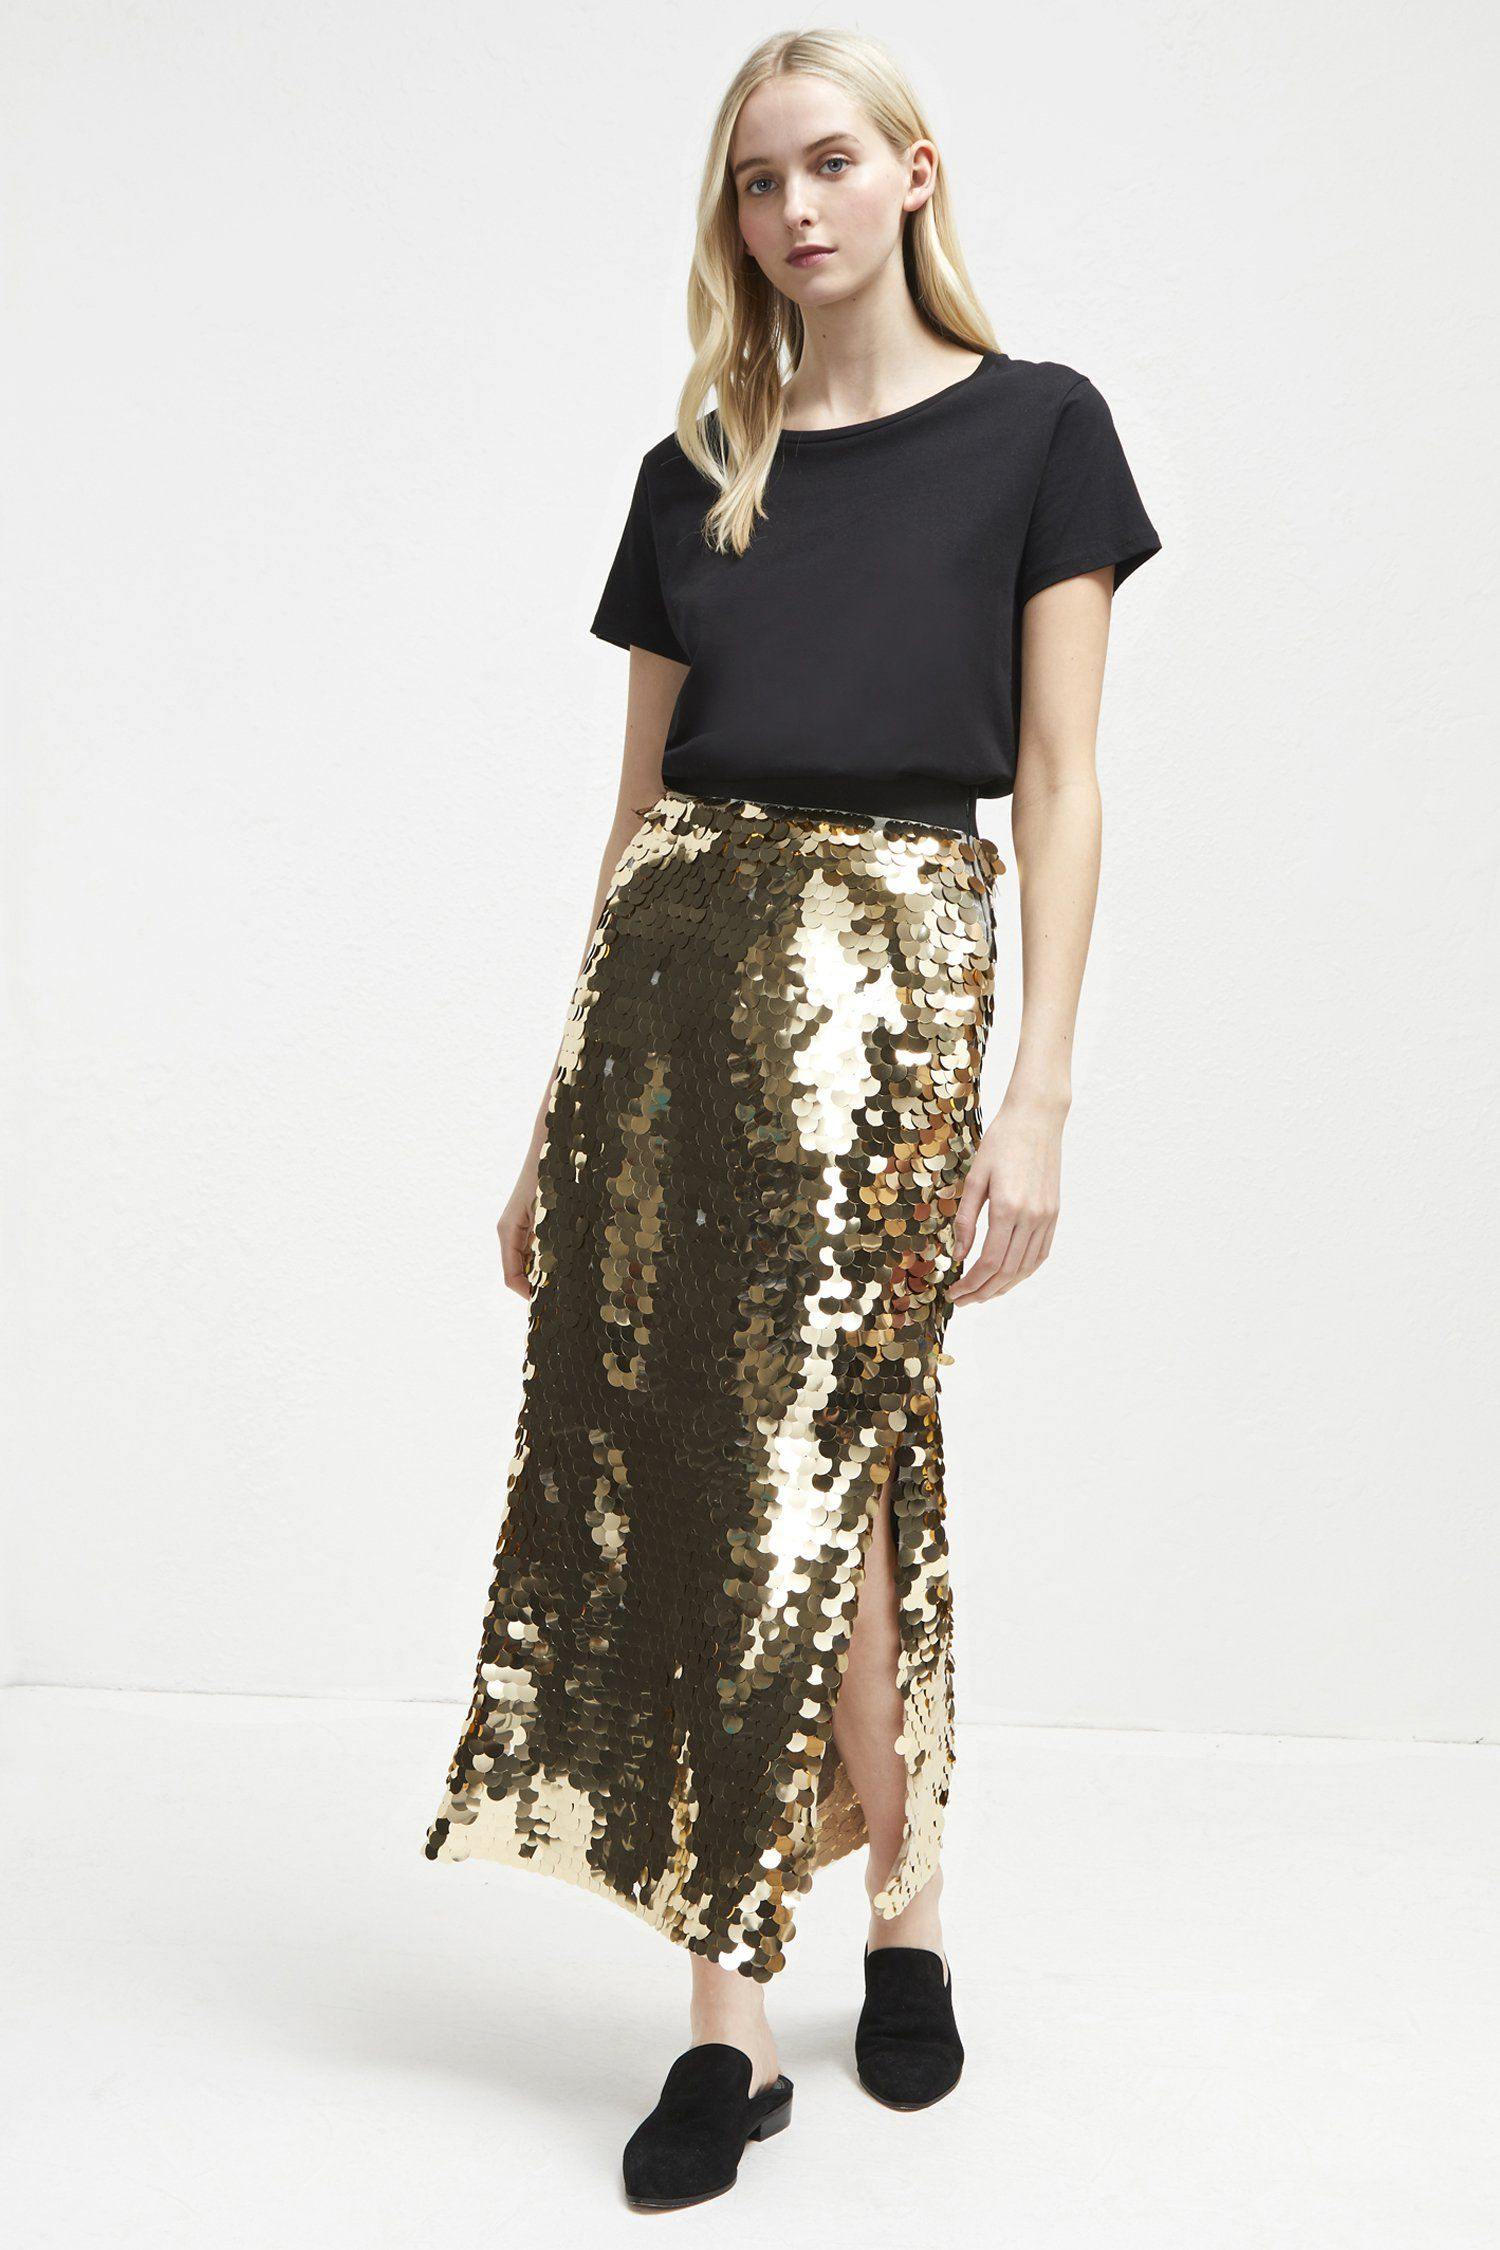 ed53dfbf4 French Connection - Sequin midi skirt Fabric: embellished, midweight,  slight stretch Mid length Large gold medallion sequins Elasticated waistband